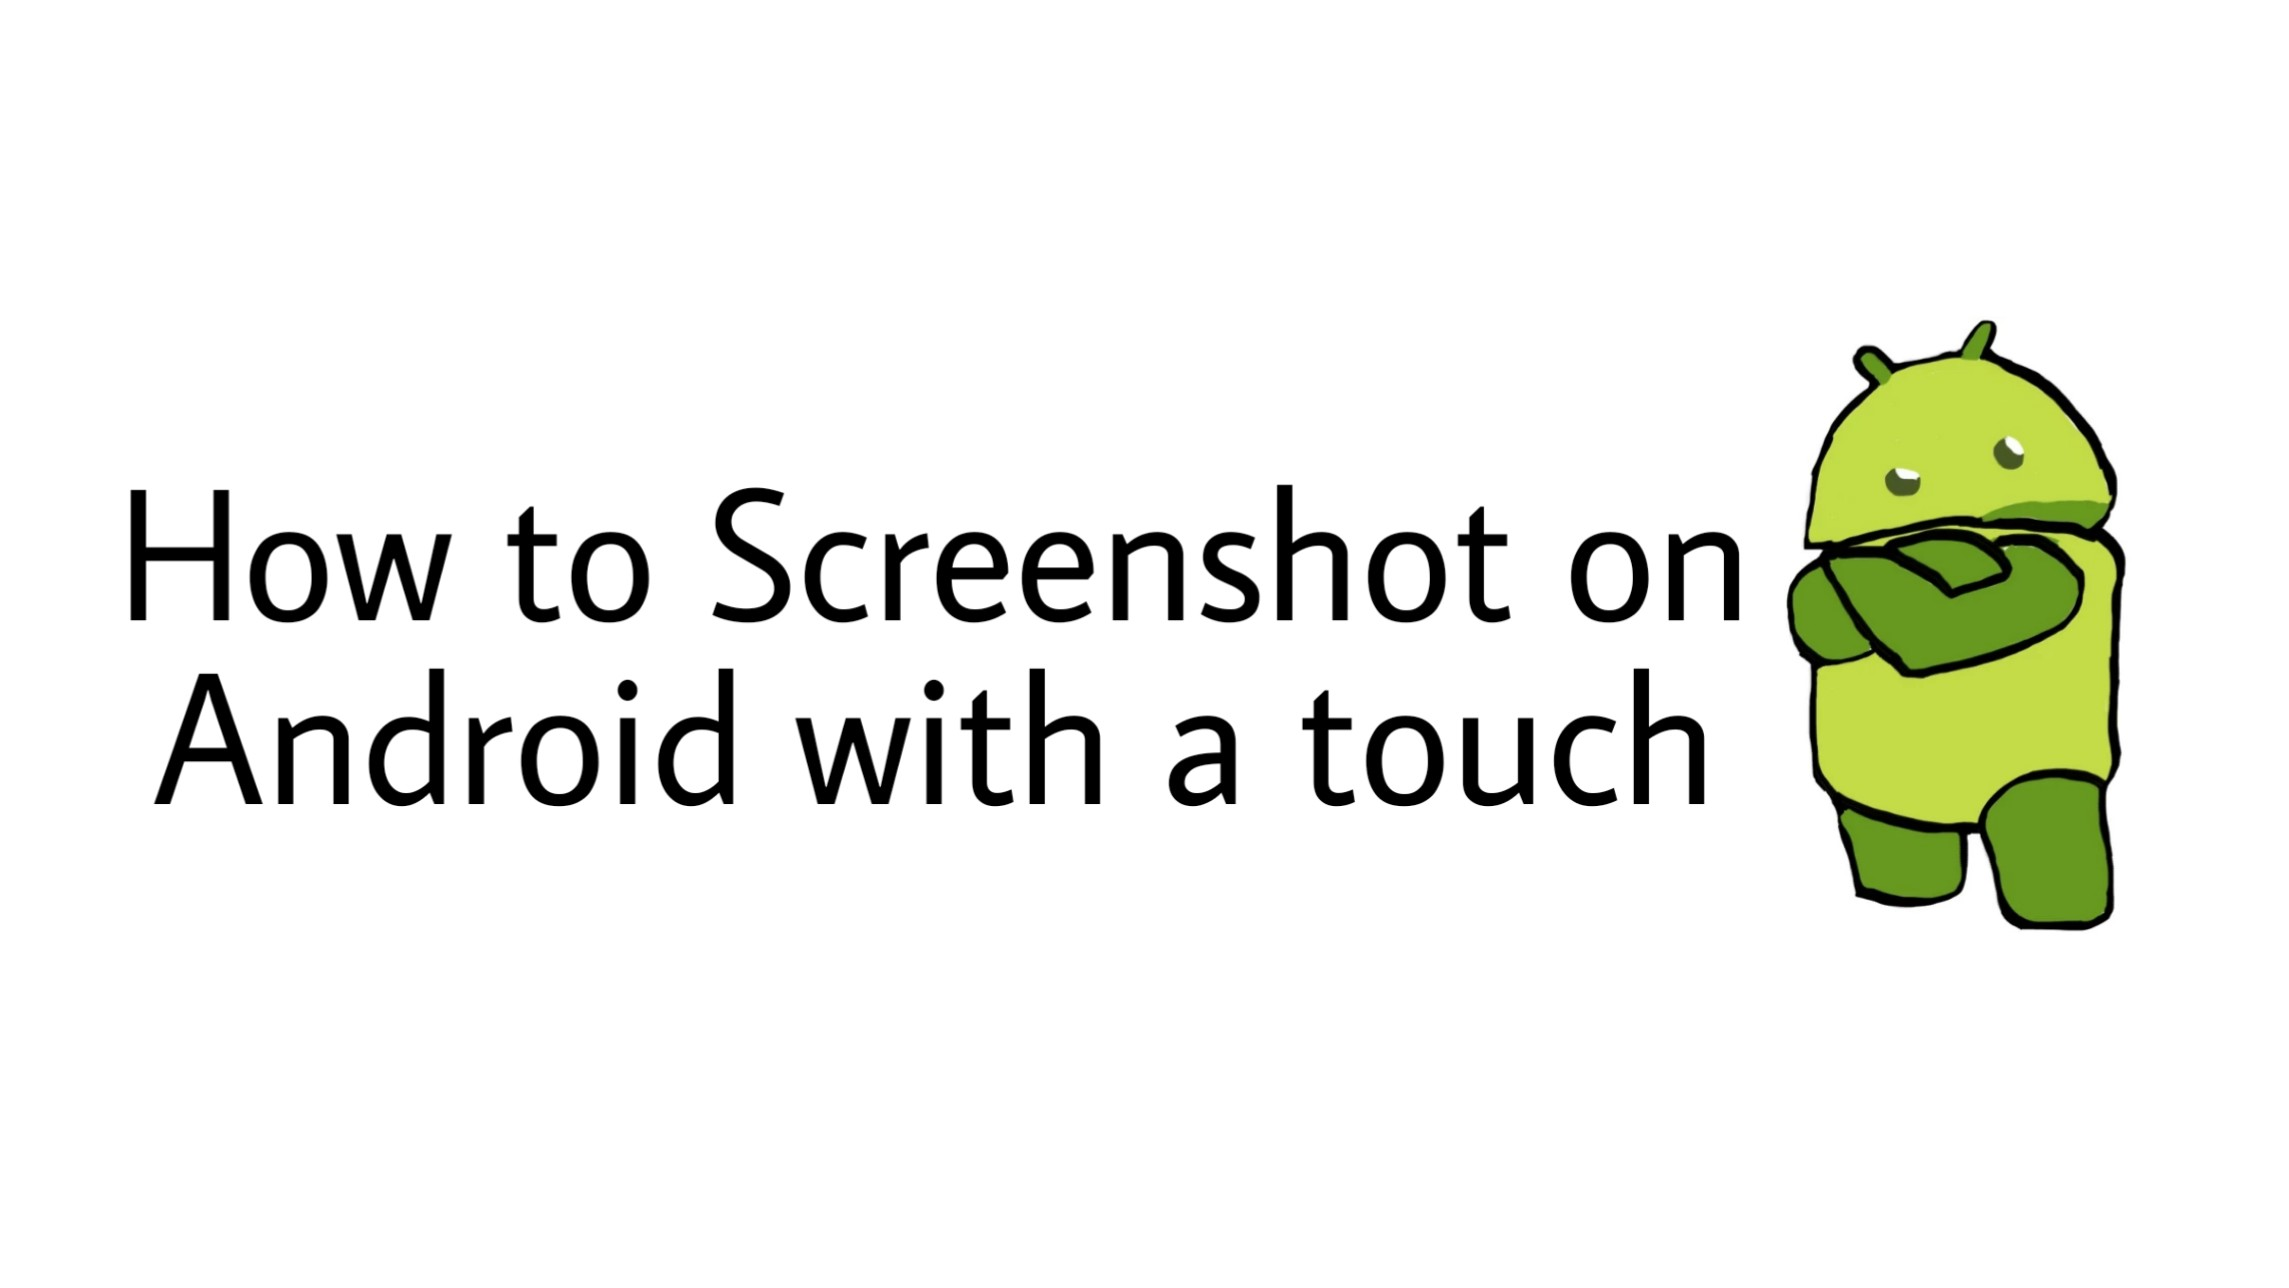 Android phone how to screenshot with a touch